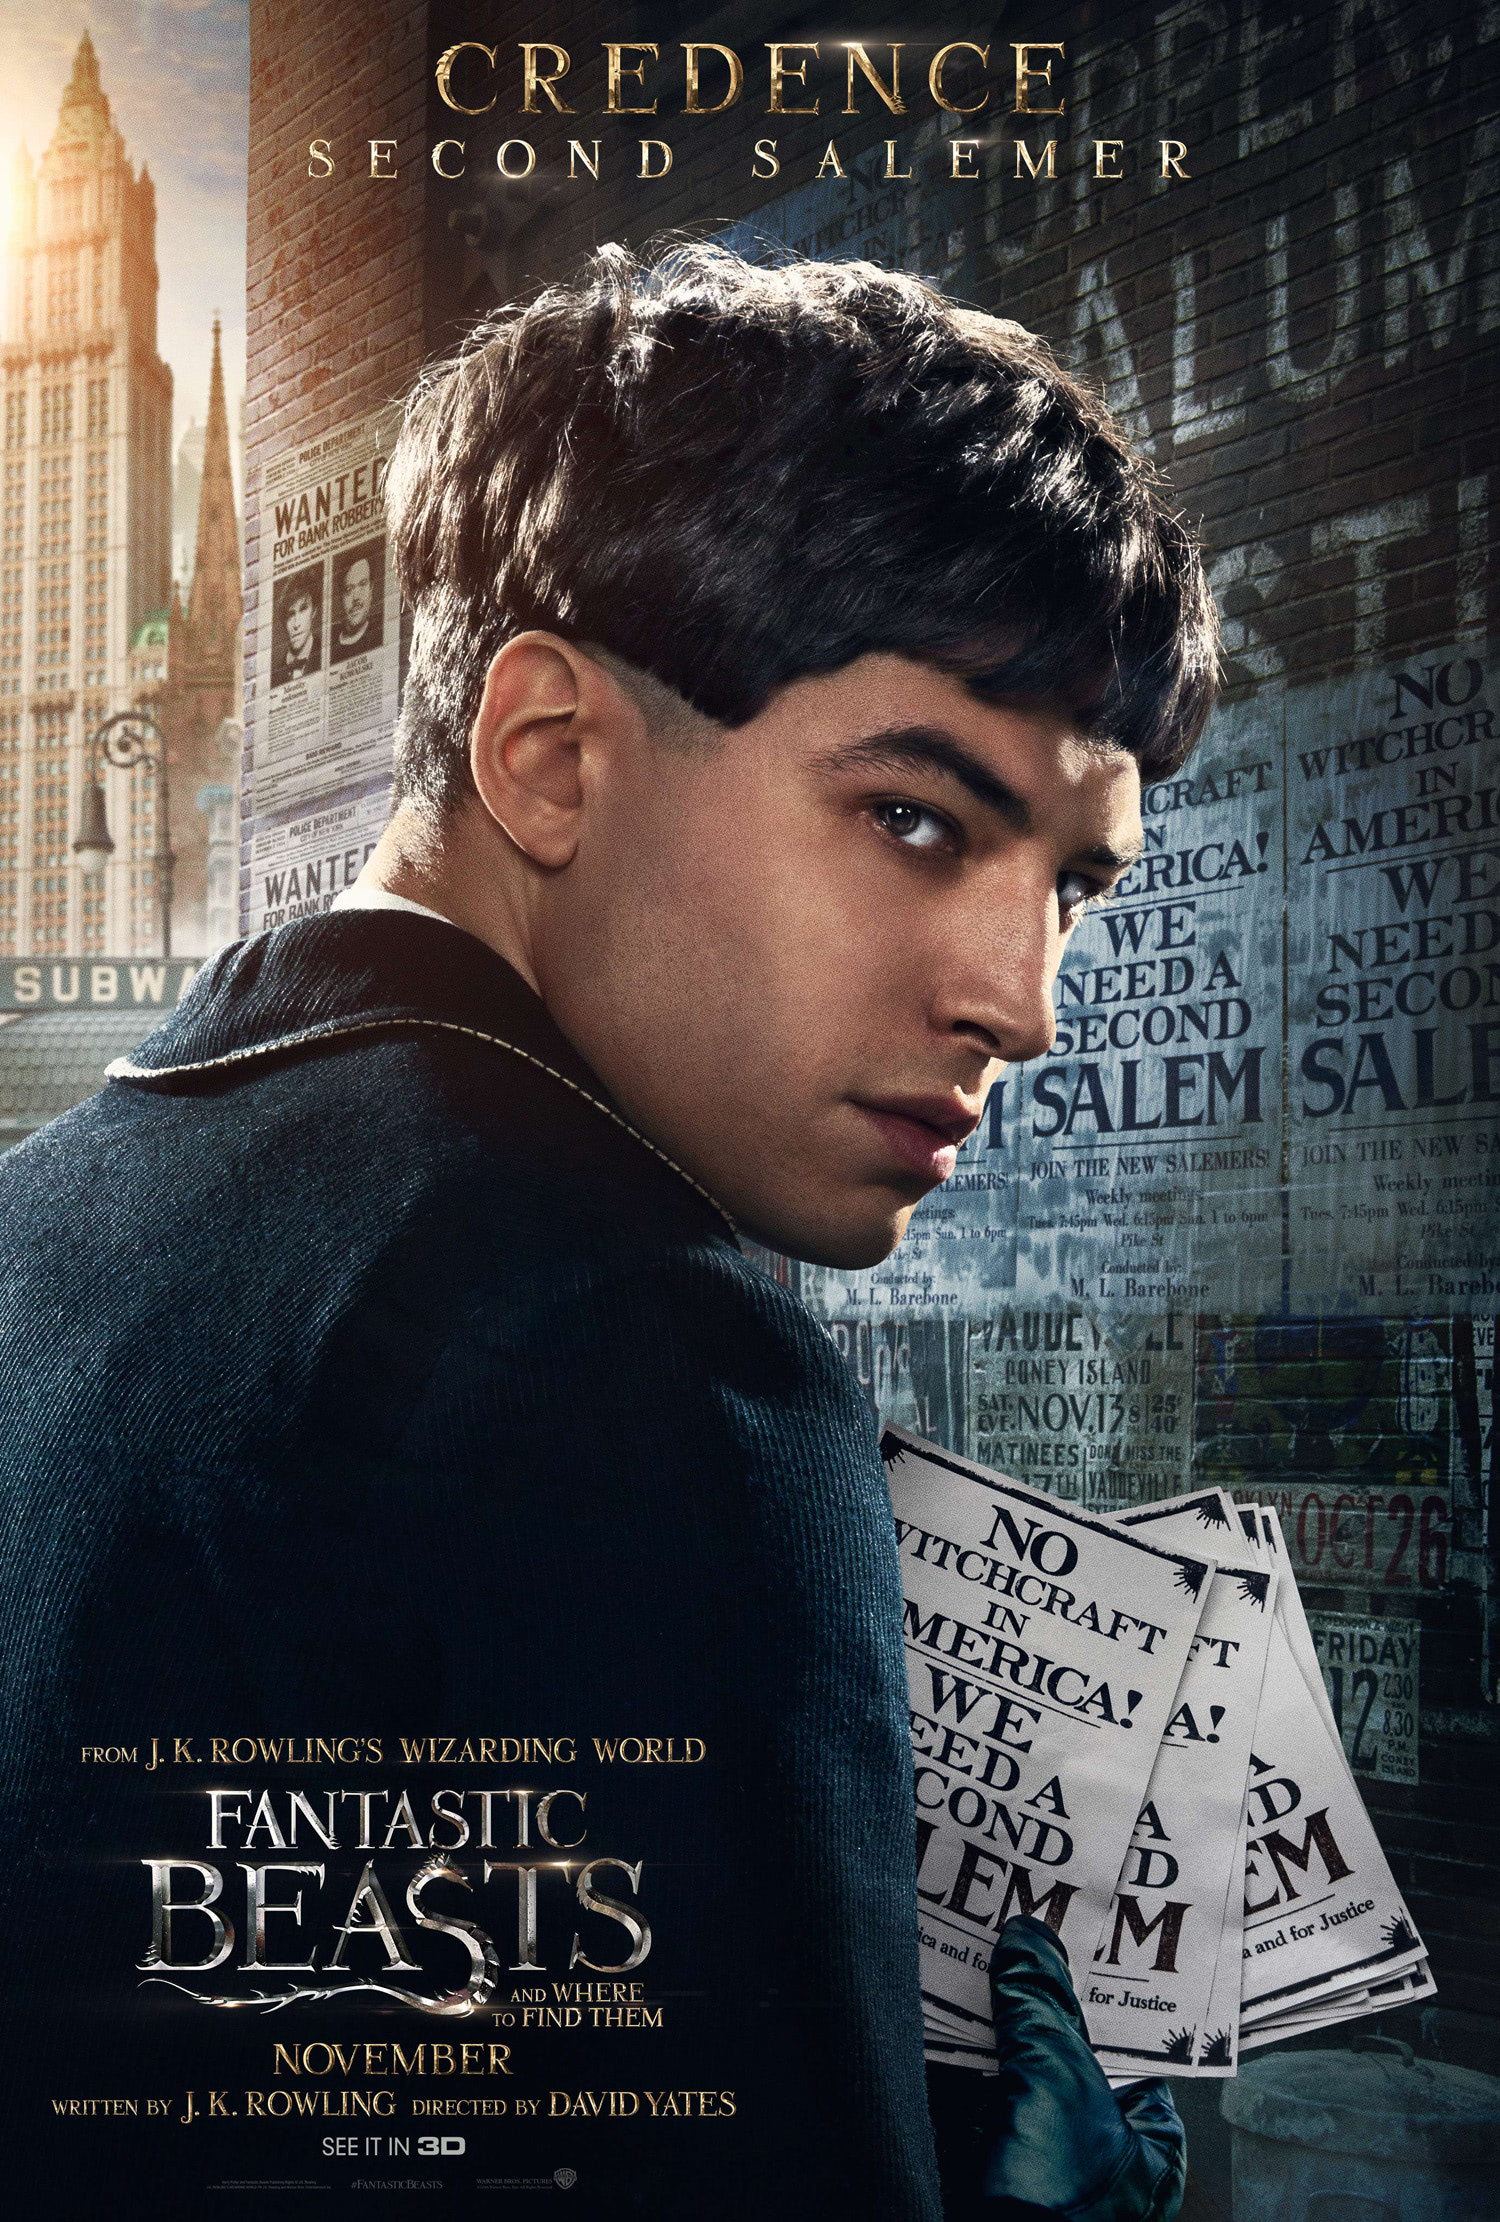 'Fantastic Beasts and Where to Find Them' Credence poster